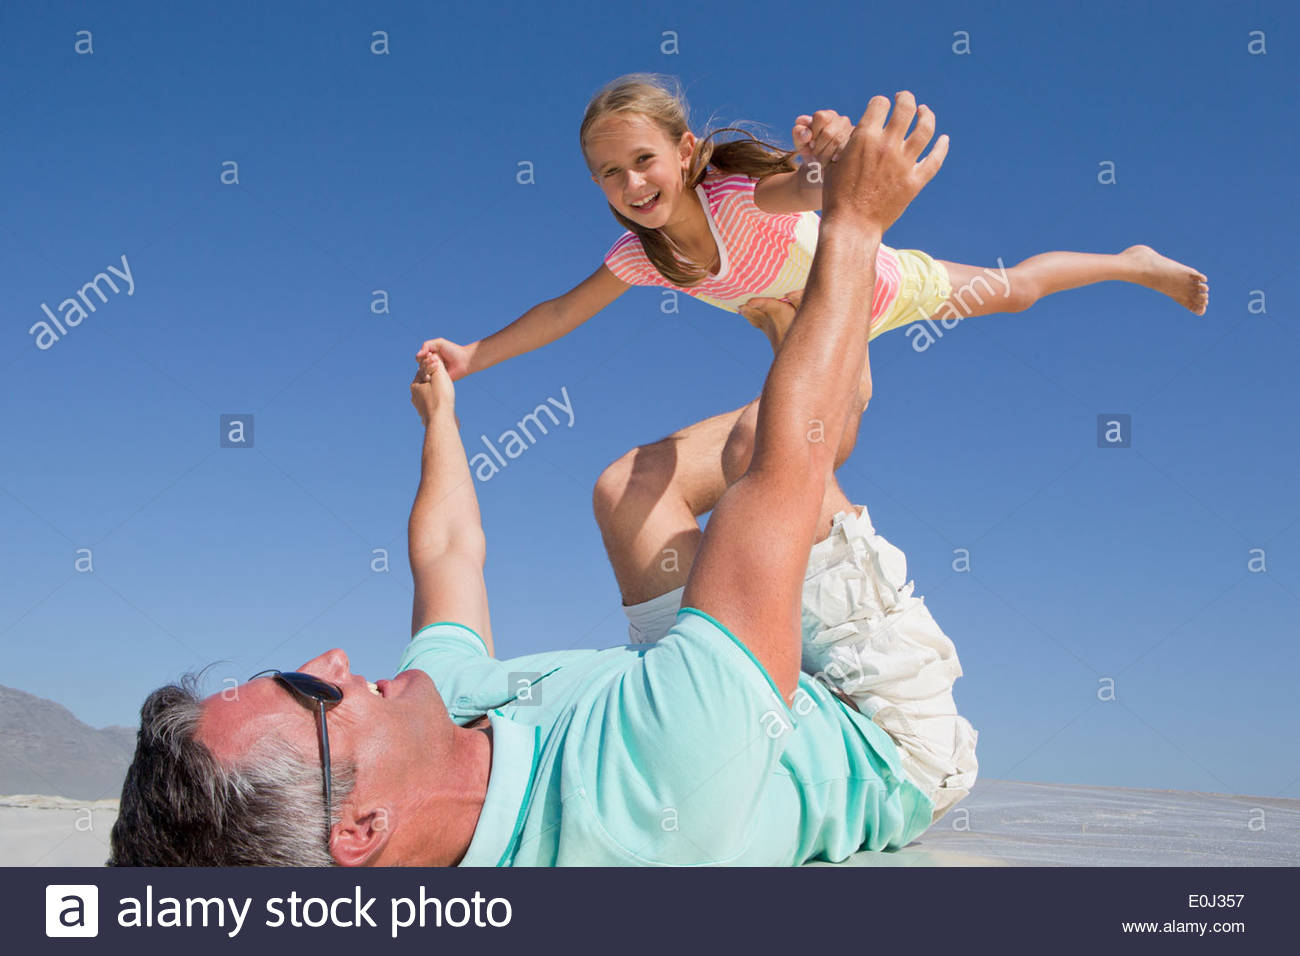 Father lifting daughter on sunny beach - Stock Image